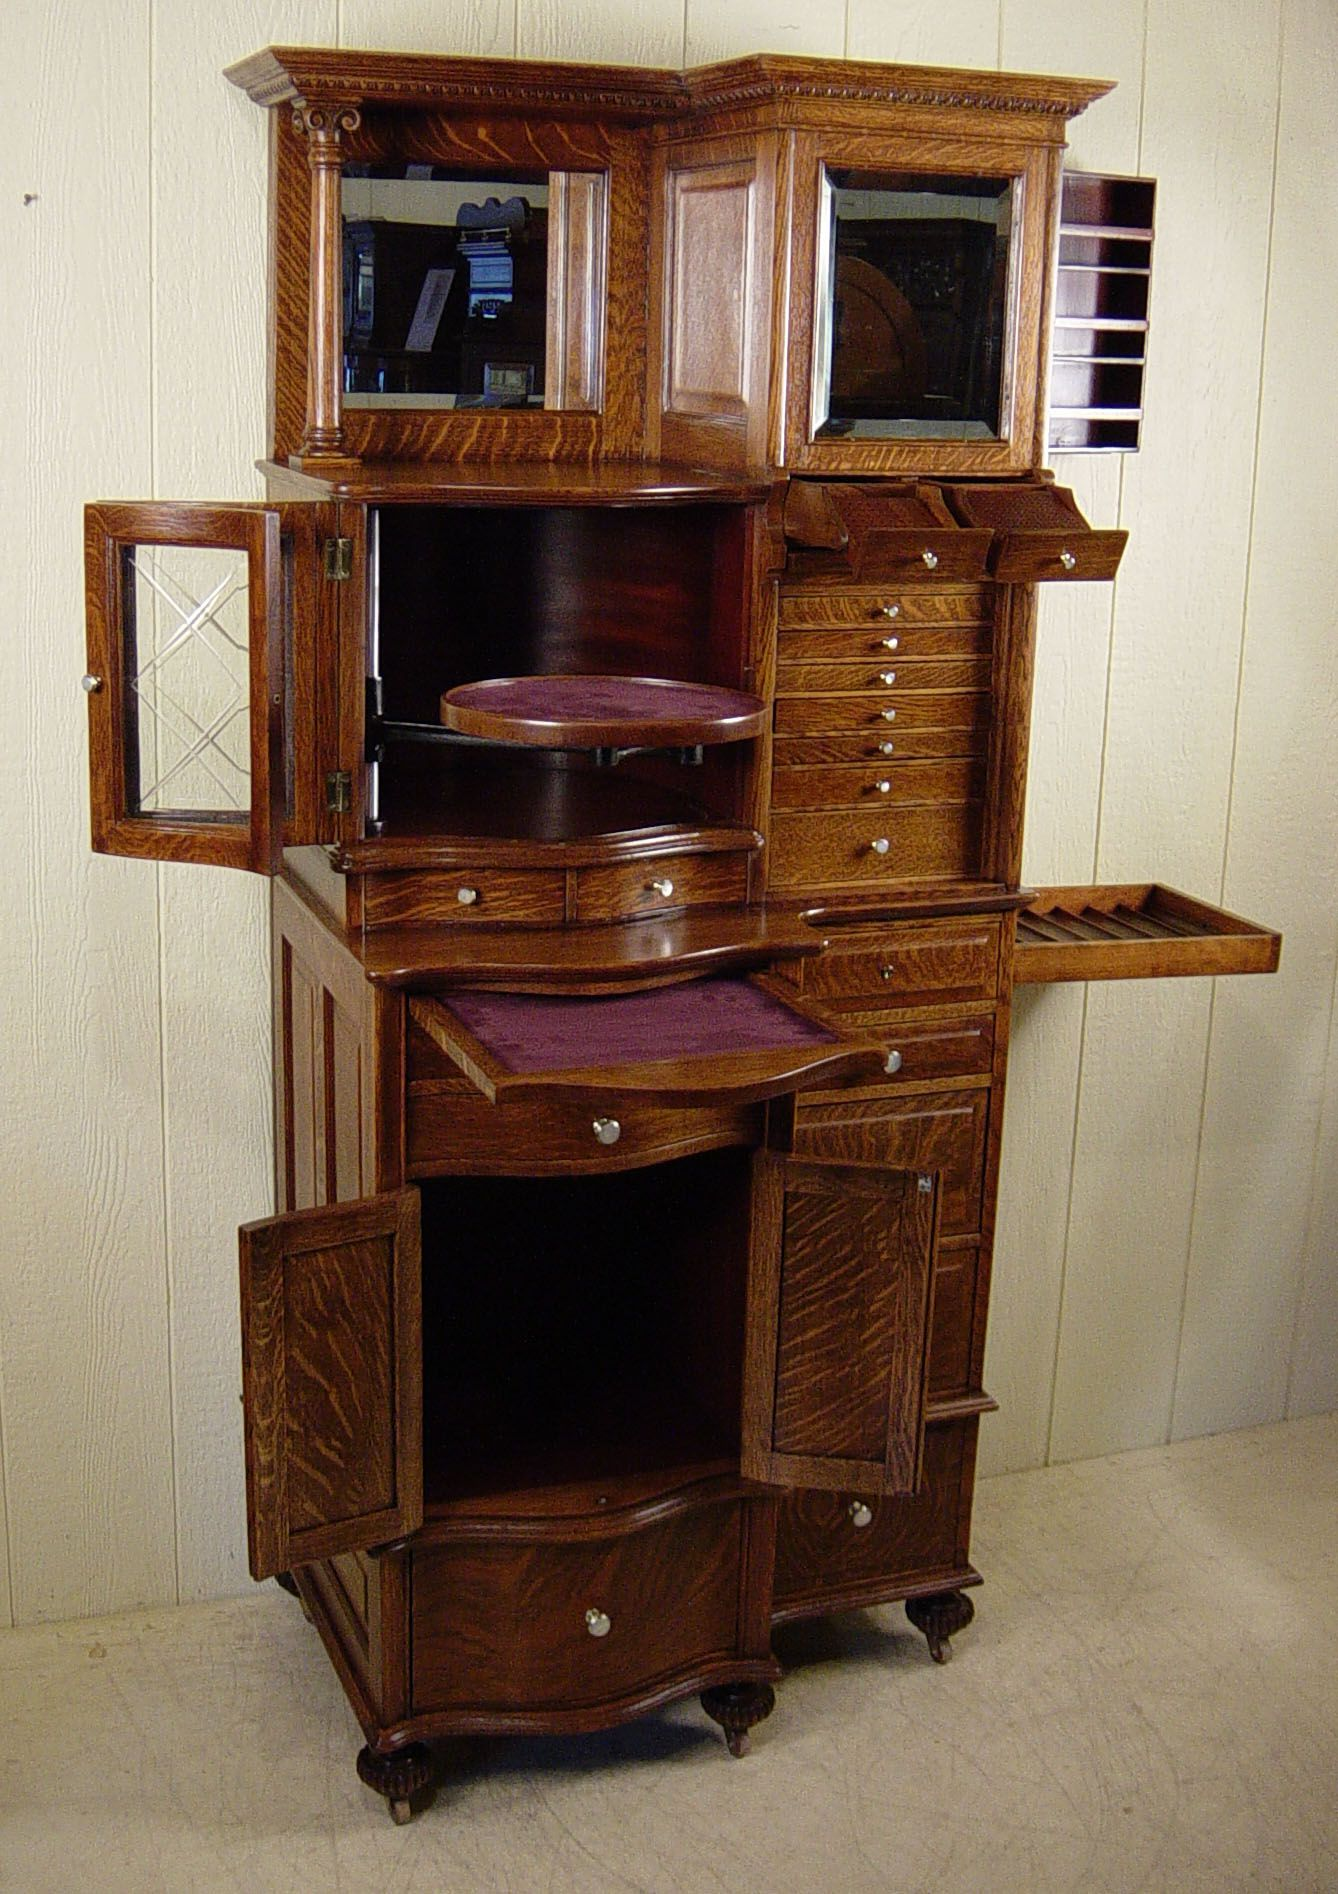 This cabinet is considered the best cabinet ever made by the Ransom &  Randolph Co. There were only 400 made. - Ransom & Randolph Co. Oak Dental Cabinet - Cabinet#66 Antique Dark